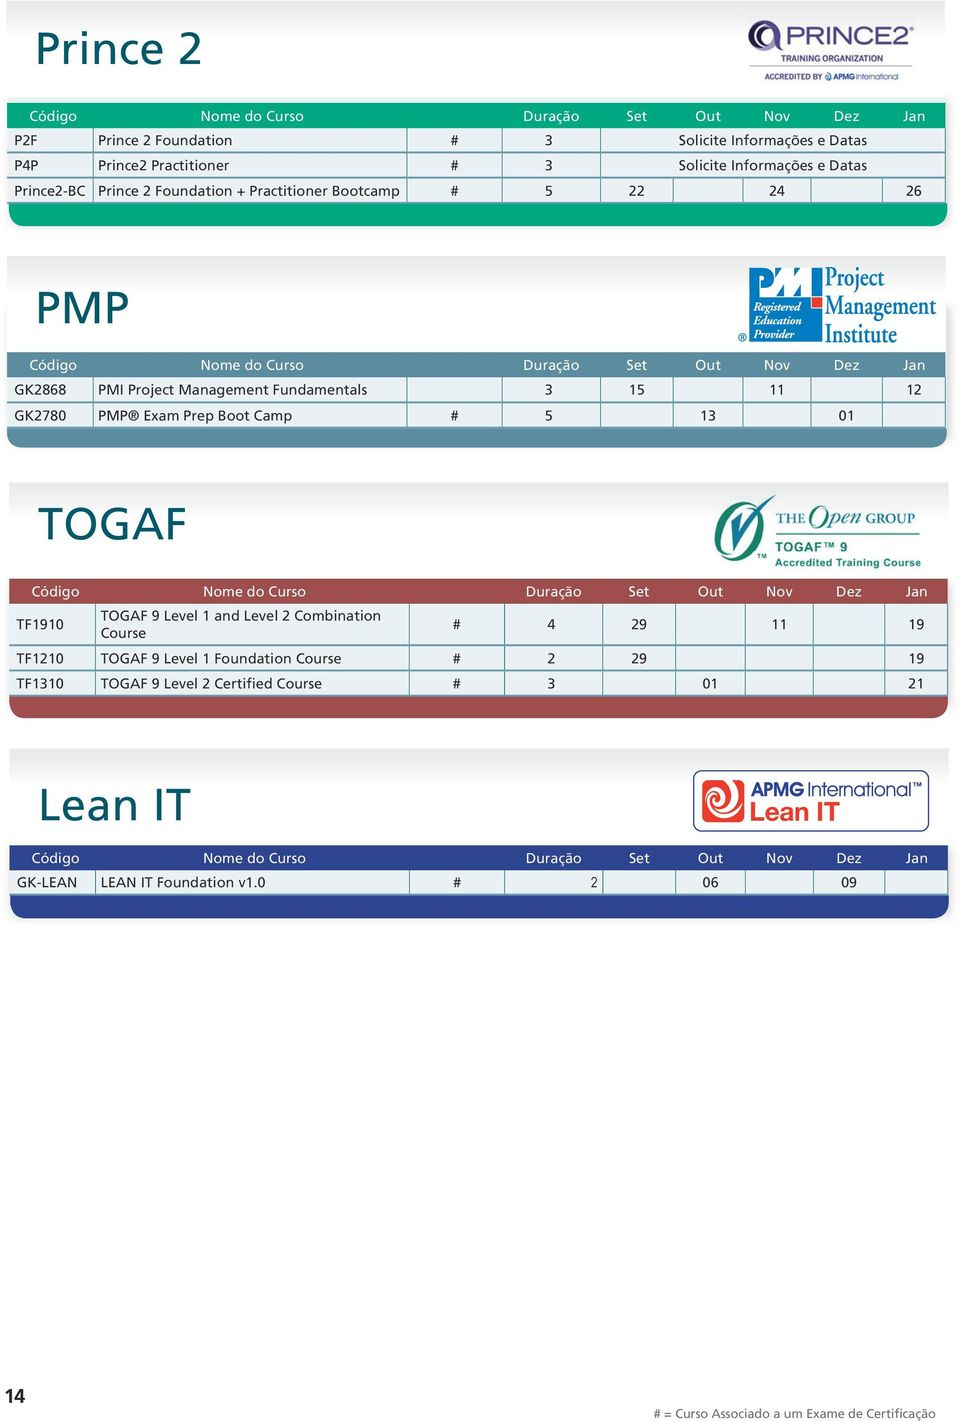 GK2780 PMP Exam Prep Boot Camp # 5 13 01 TOGAF Código Nome do Curso Duração Set Out Nov Dez Jan TF1910 TOGAF 9 Level 1 and Level 2 Combination Course # 4 29 11 19 TF1210 TOGAF 9